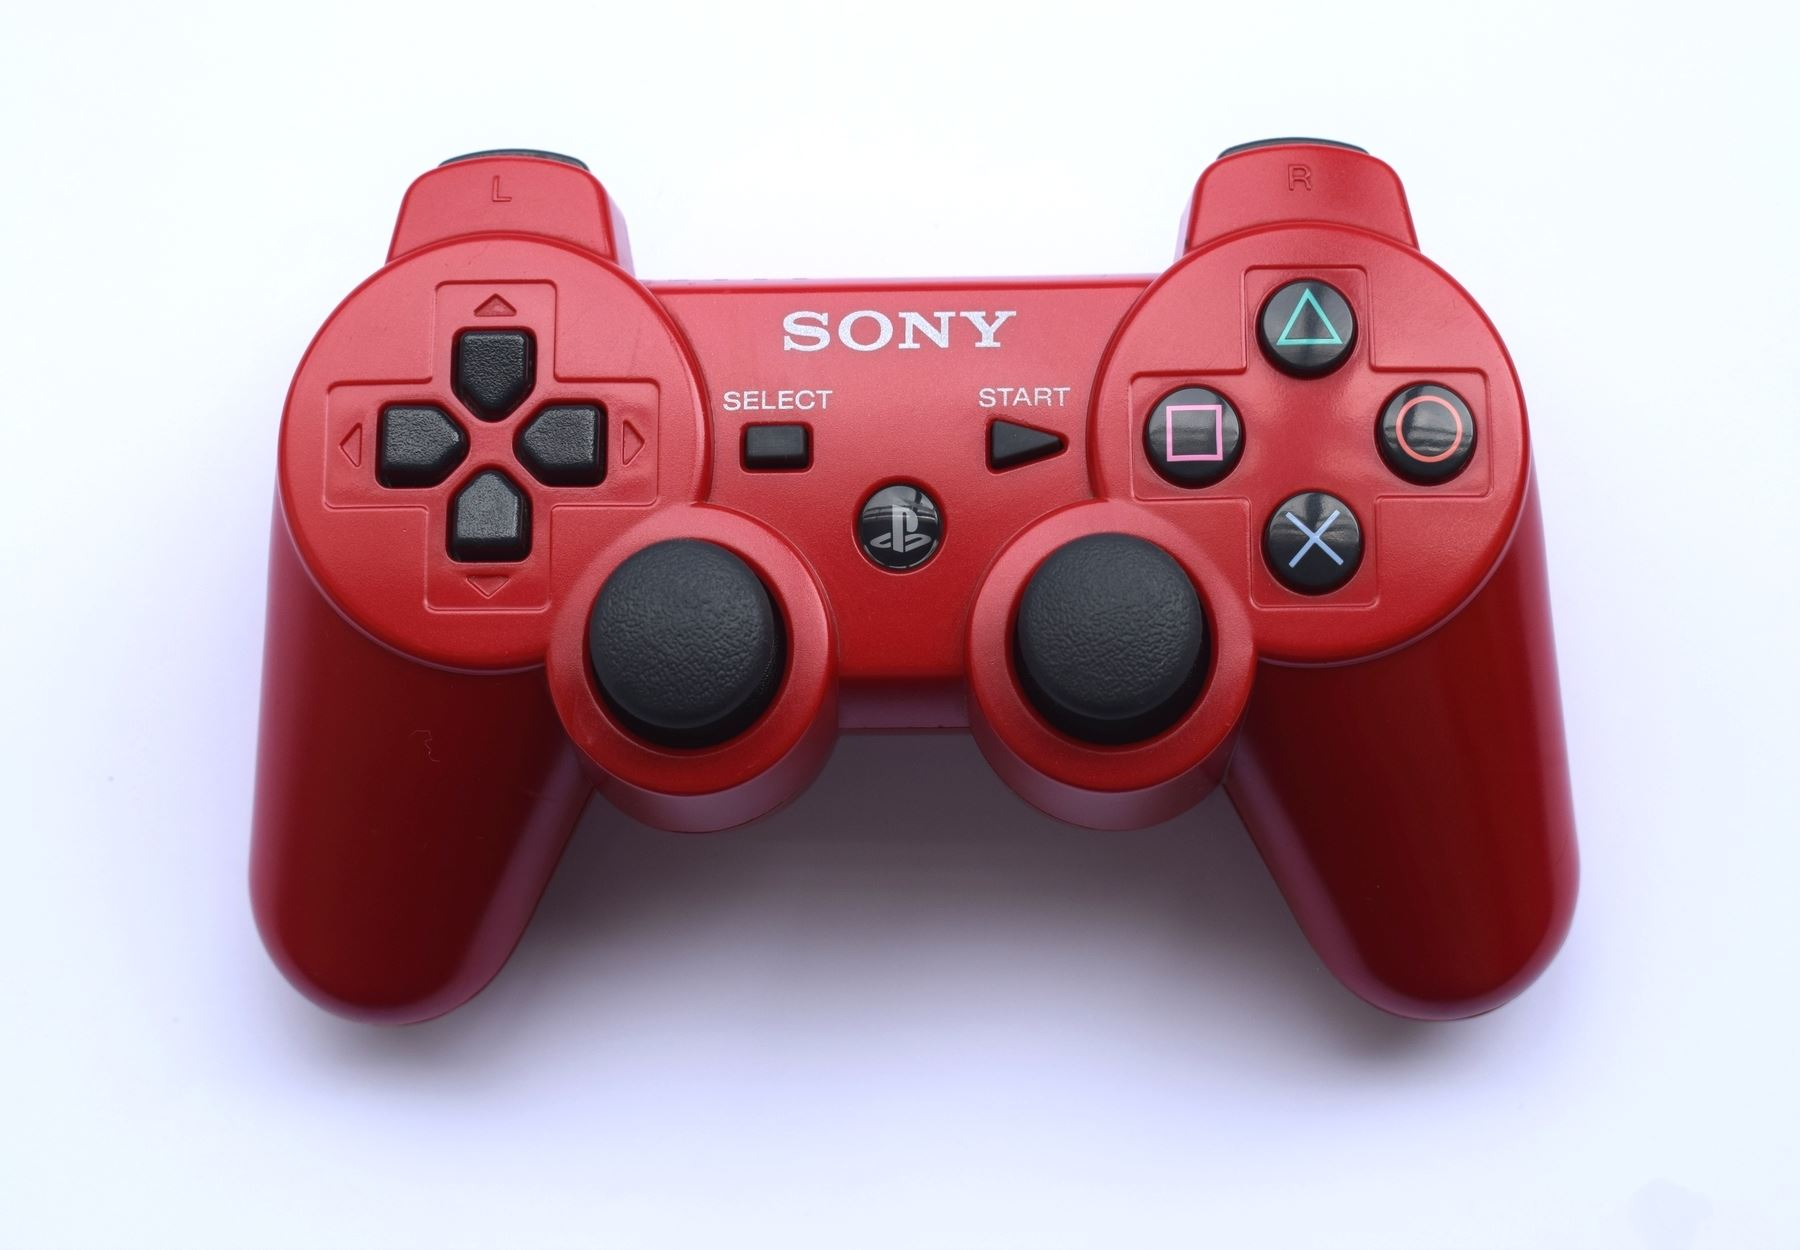 Official-Original-Sony-Playstation-Dual-Shock-3-PS3-Controller-Multiple-Colours thumbnail 42